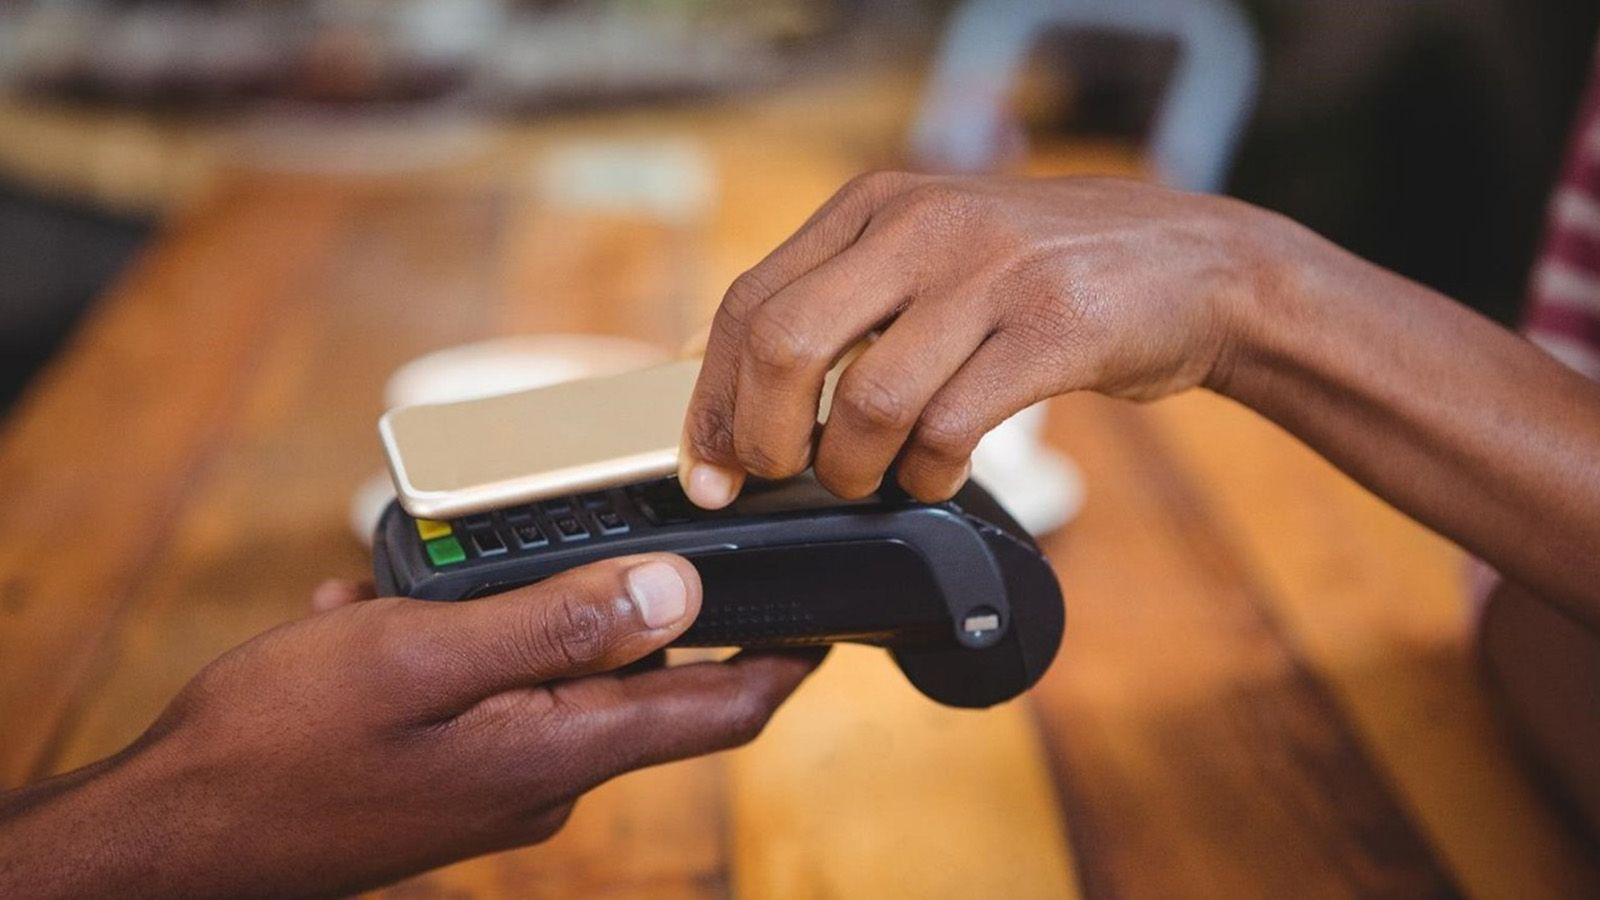 The road to Africa's future growth is paved with electronic payments